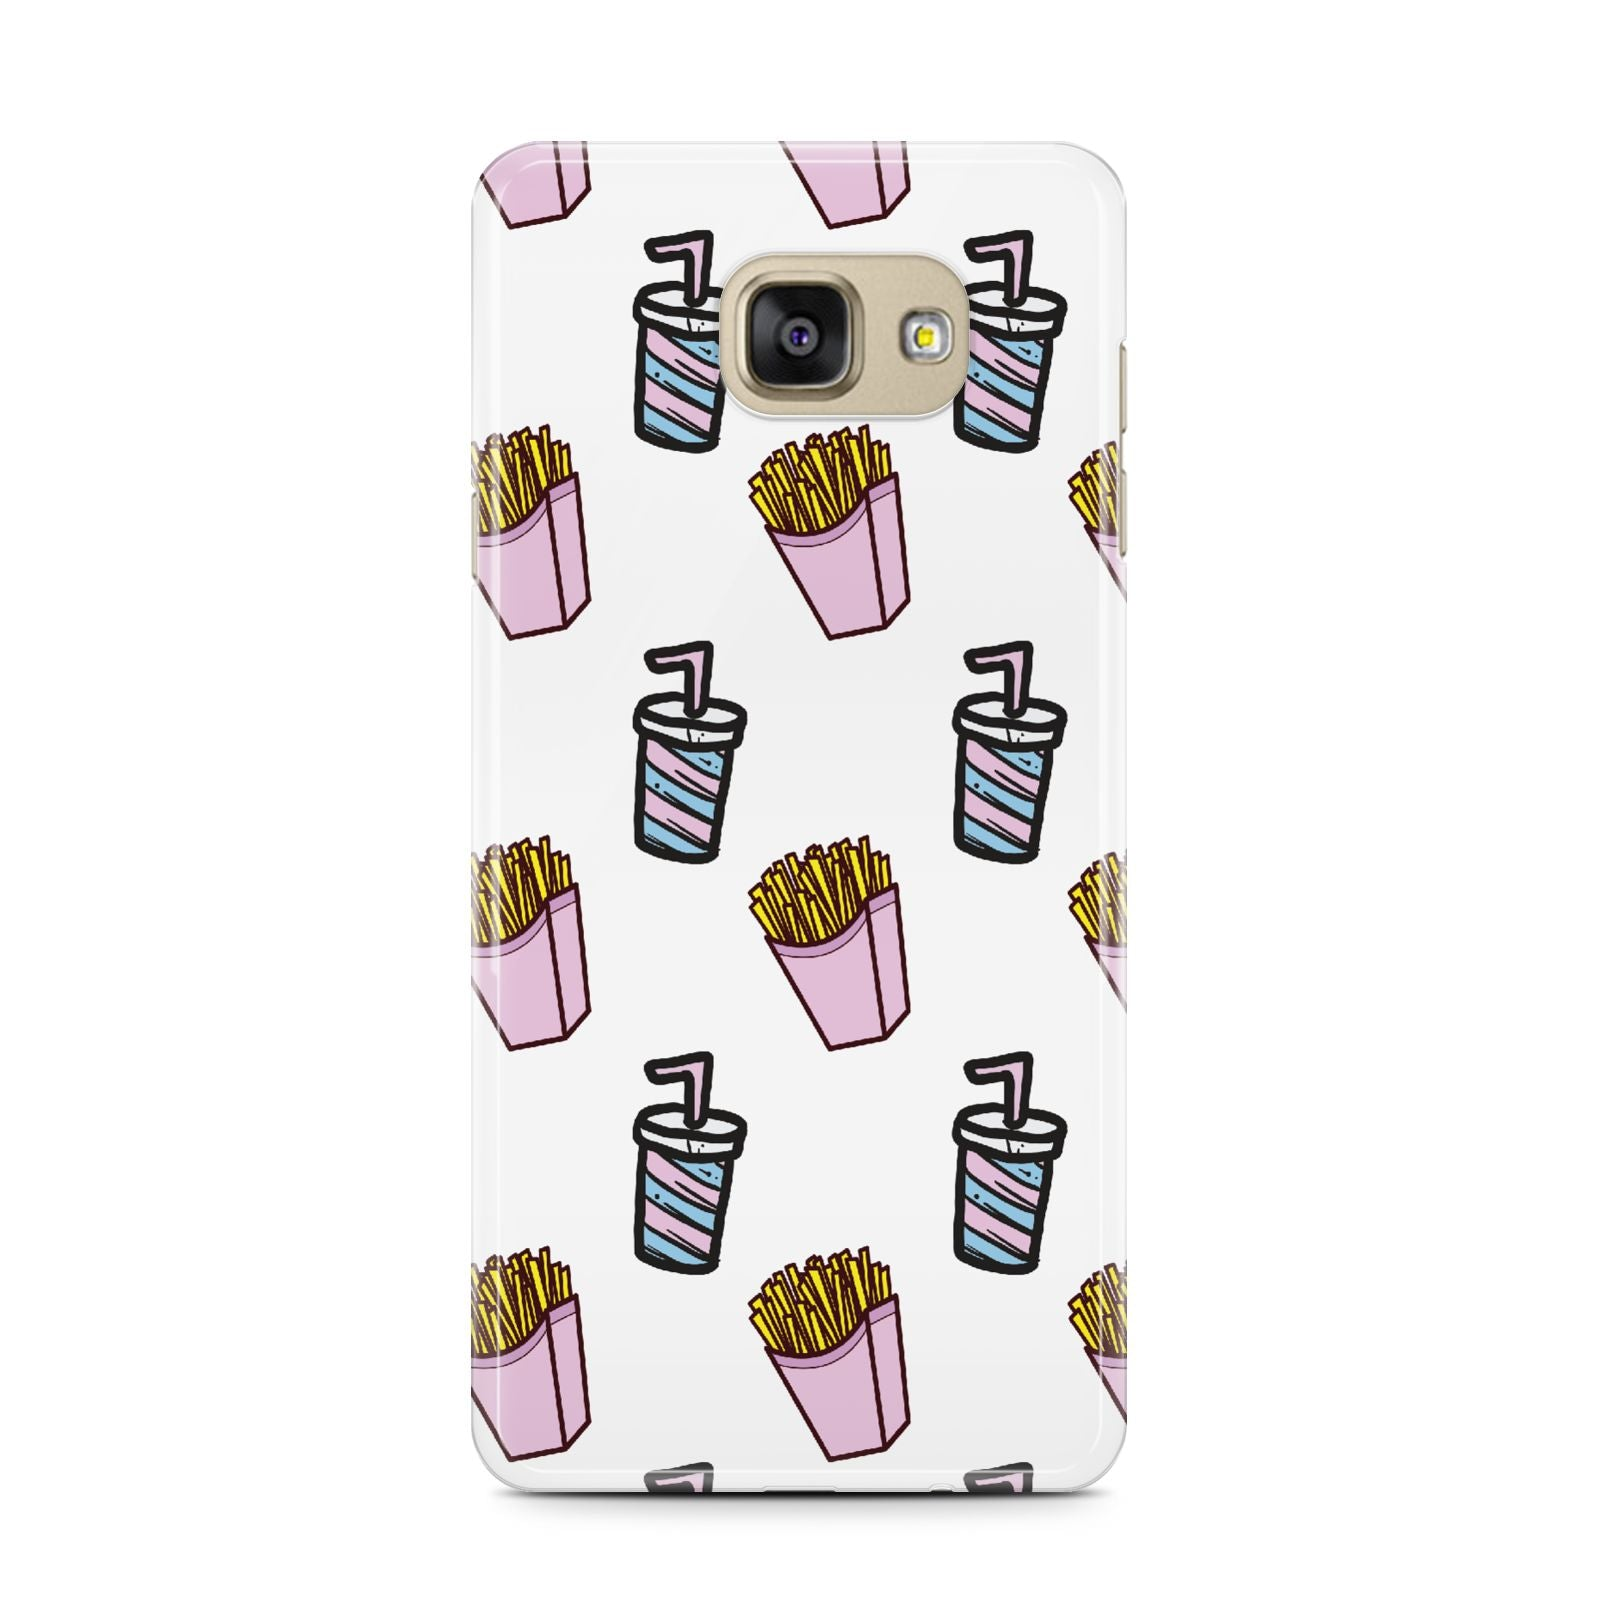 Fries Shake Fast Food Samsung Galaxy A7 2016 Case on gold phone